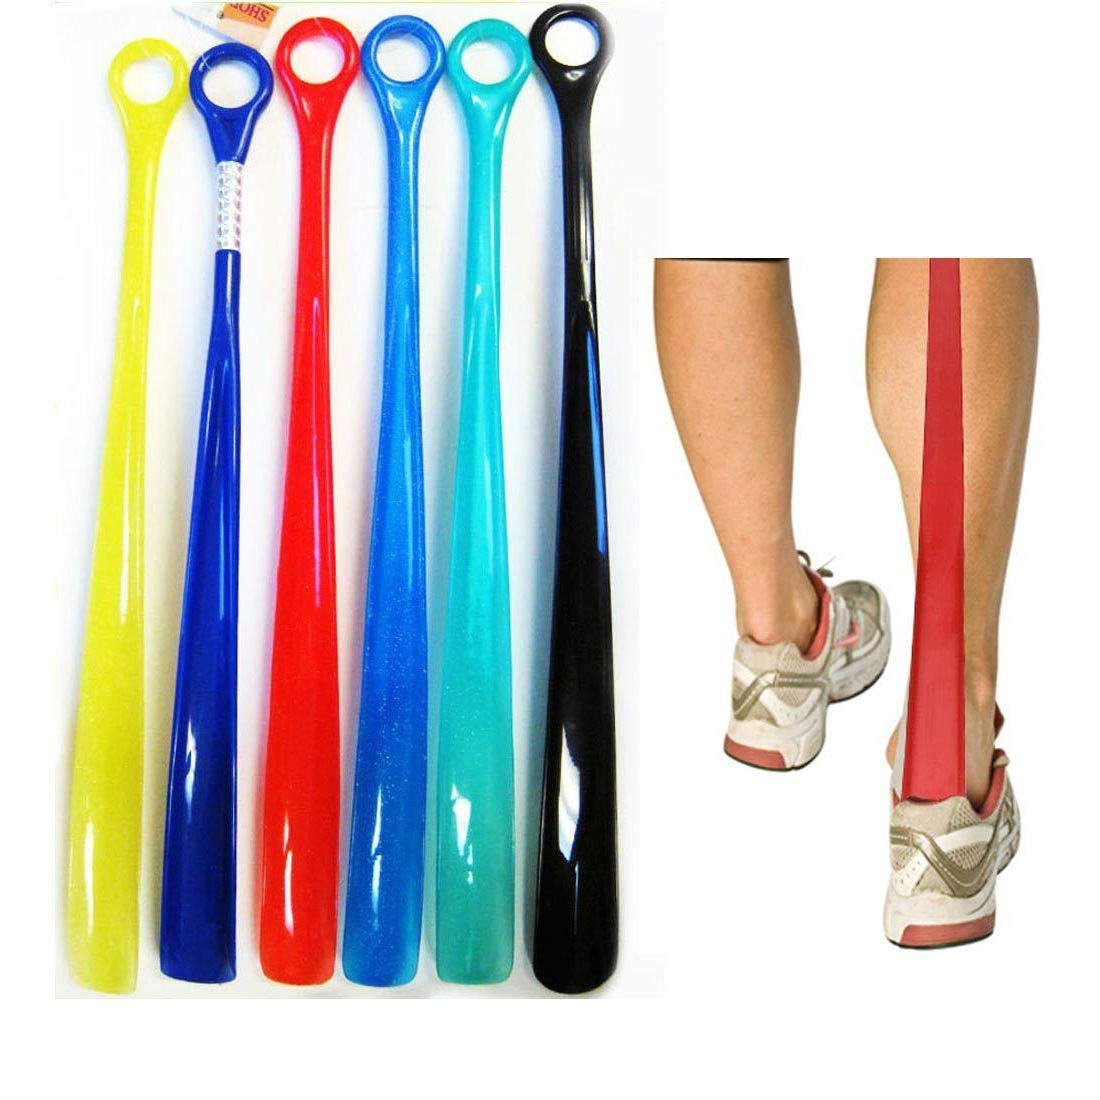 2 Plastic Shoehorns 18.5'' Extra Long Large Shoe Horn Handle Sturdy Flexible New by Unknown